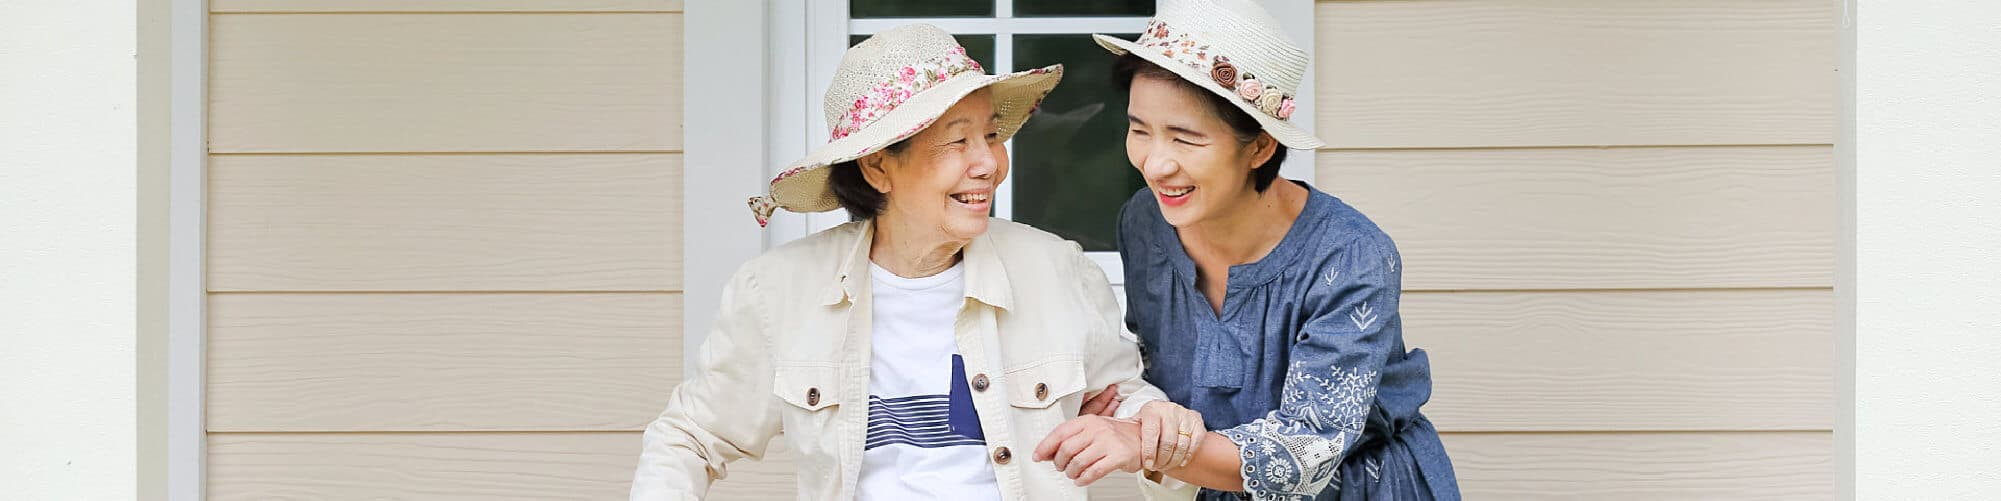 Two elderly woman laughing